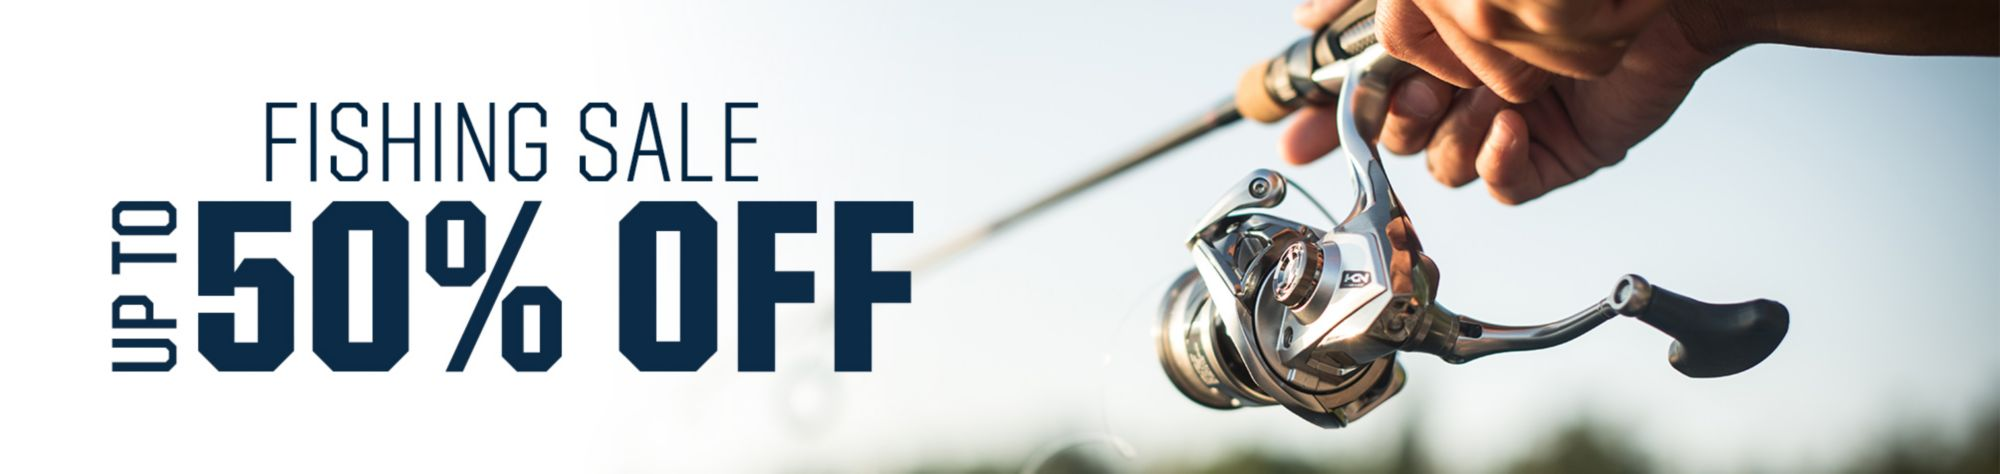 Fishing Sale! Save up to 50% Off